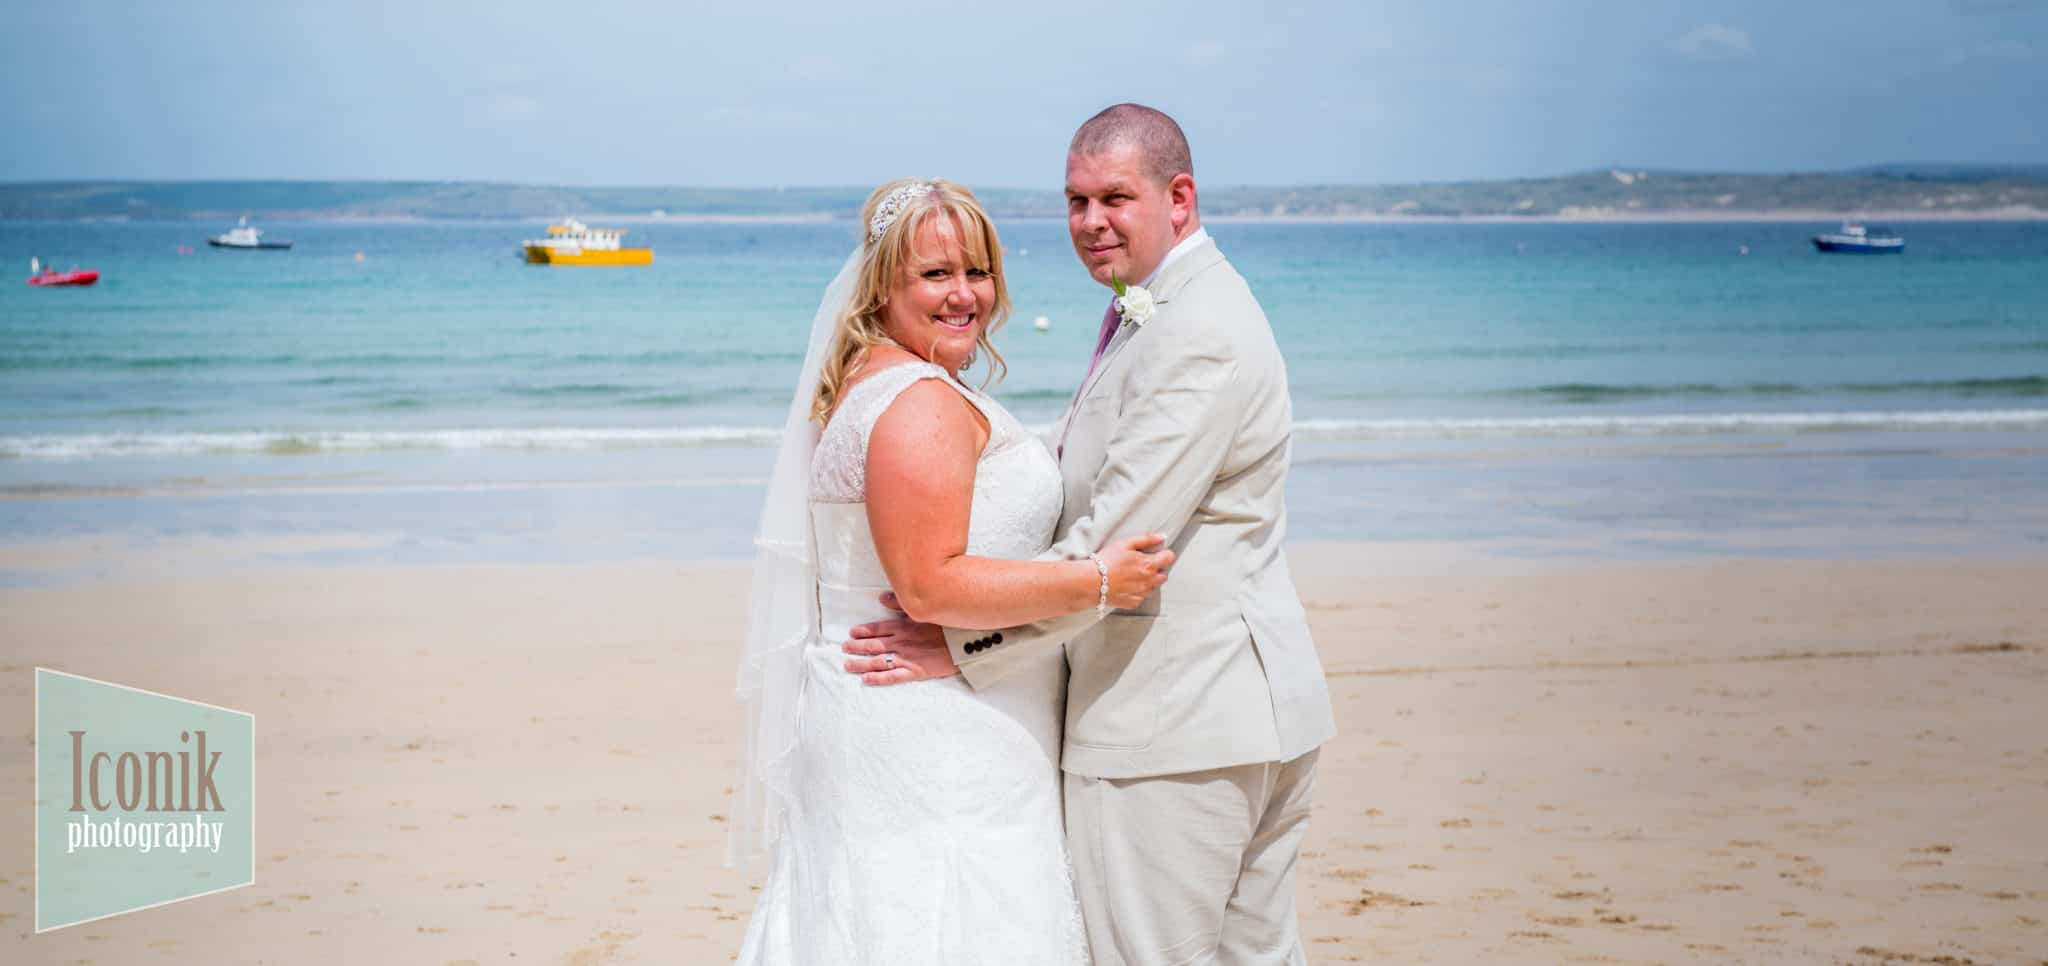 Claire and Carl's Wedding at the Guildhall in St Ives in Cornwall